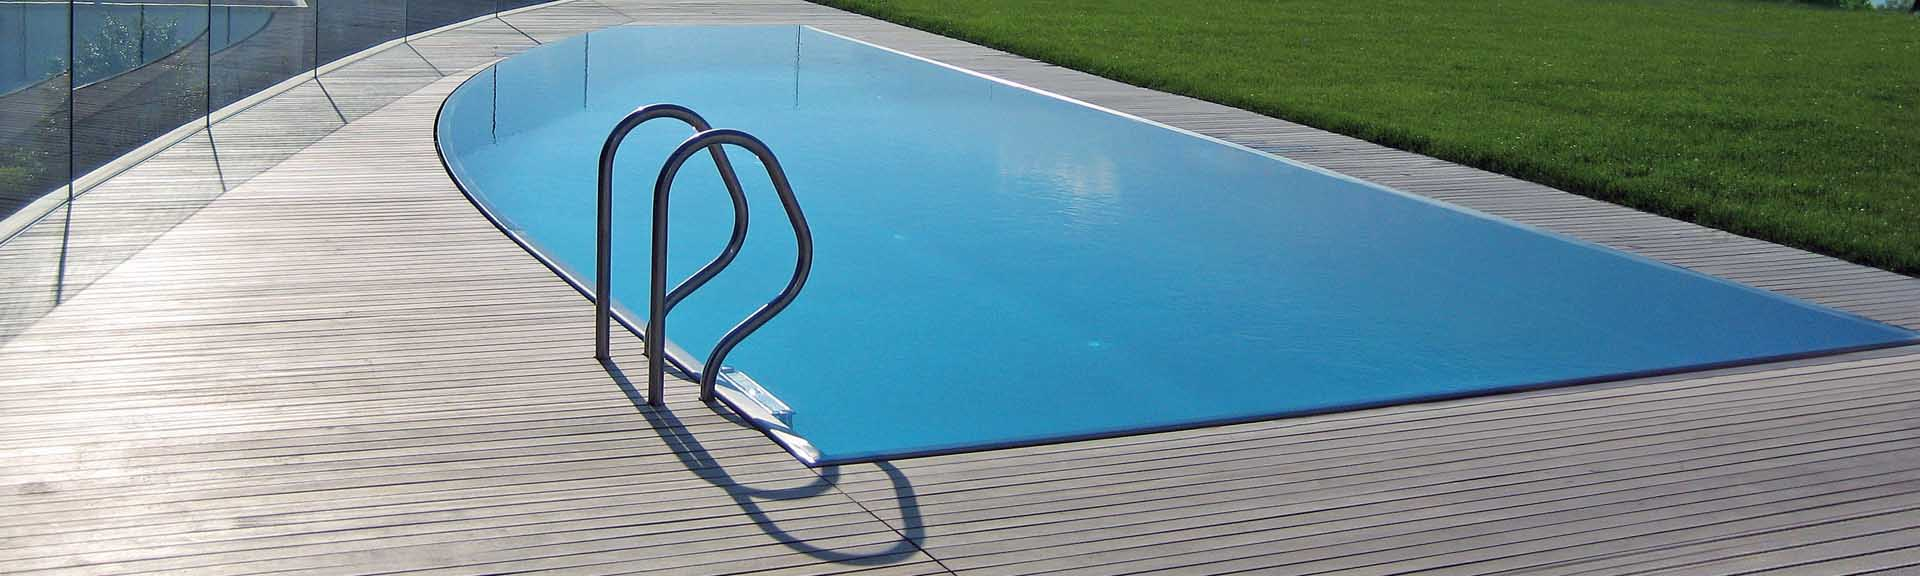 Glas Pool Stainless Steel Pools Polytherm